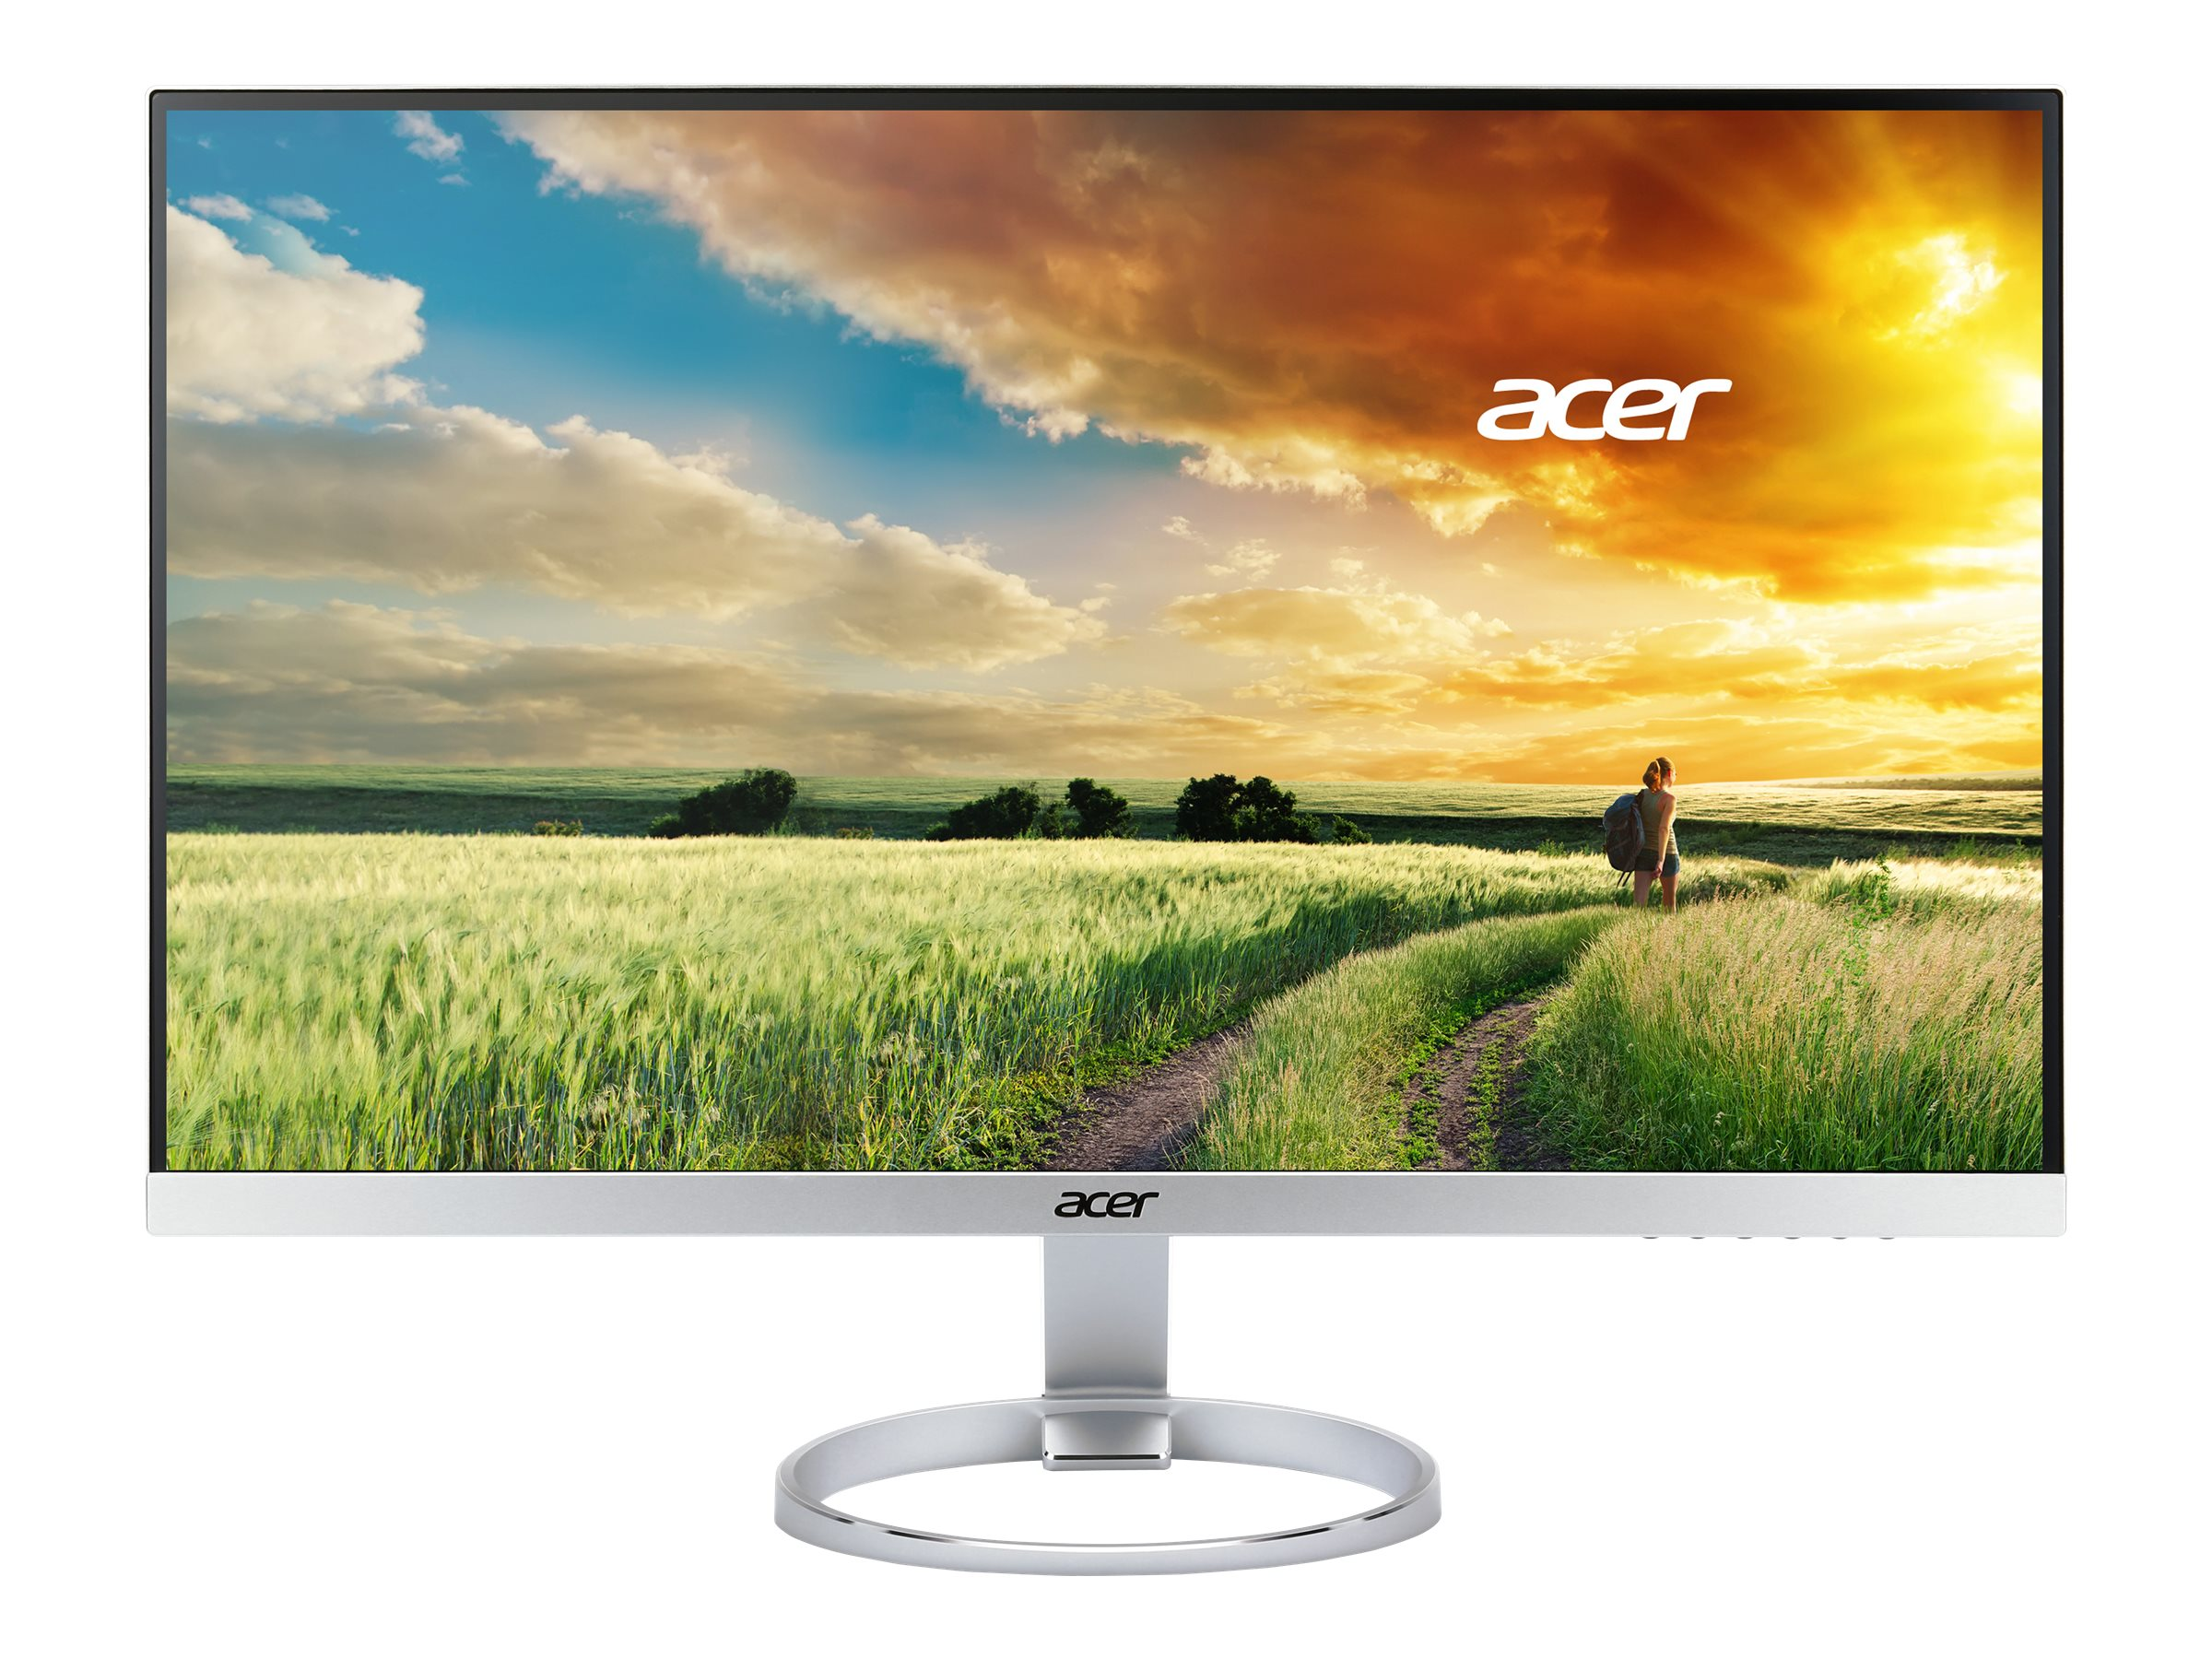 Acer 25 H257HU SMIDPX WQHD LED-LCD IPS Monitor, Silver Black, UM.KH7AA.001, 19054455, Monitors - LED-LCD